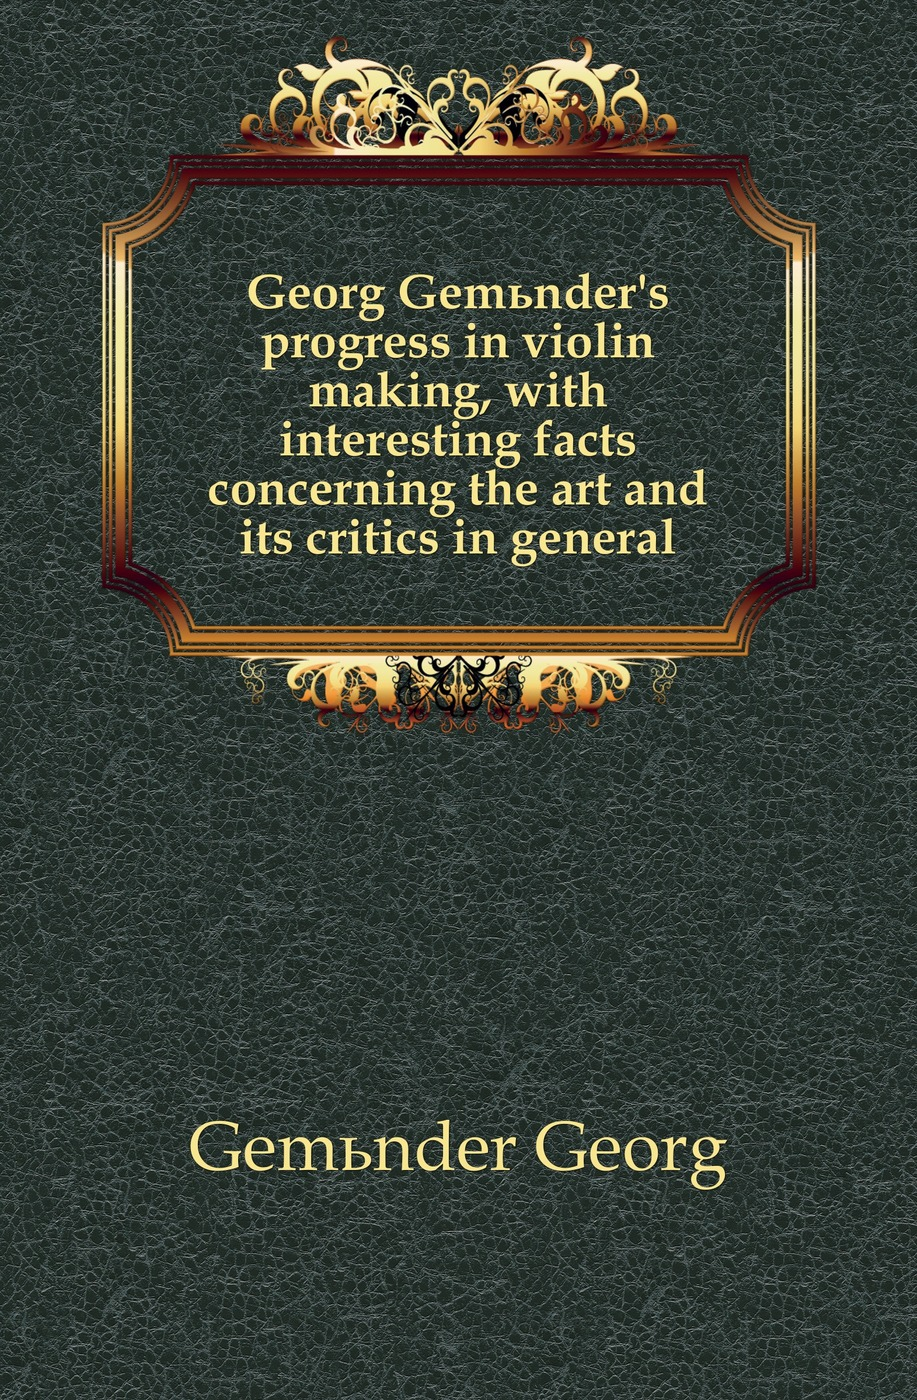 Gemünder Georg Georg Gemunder's progress in violin making, with interesting facts concerning the art and its critics in general браслет georg art georg art mp002xw18tlb